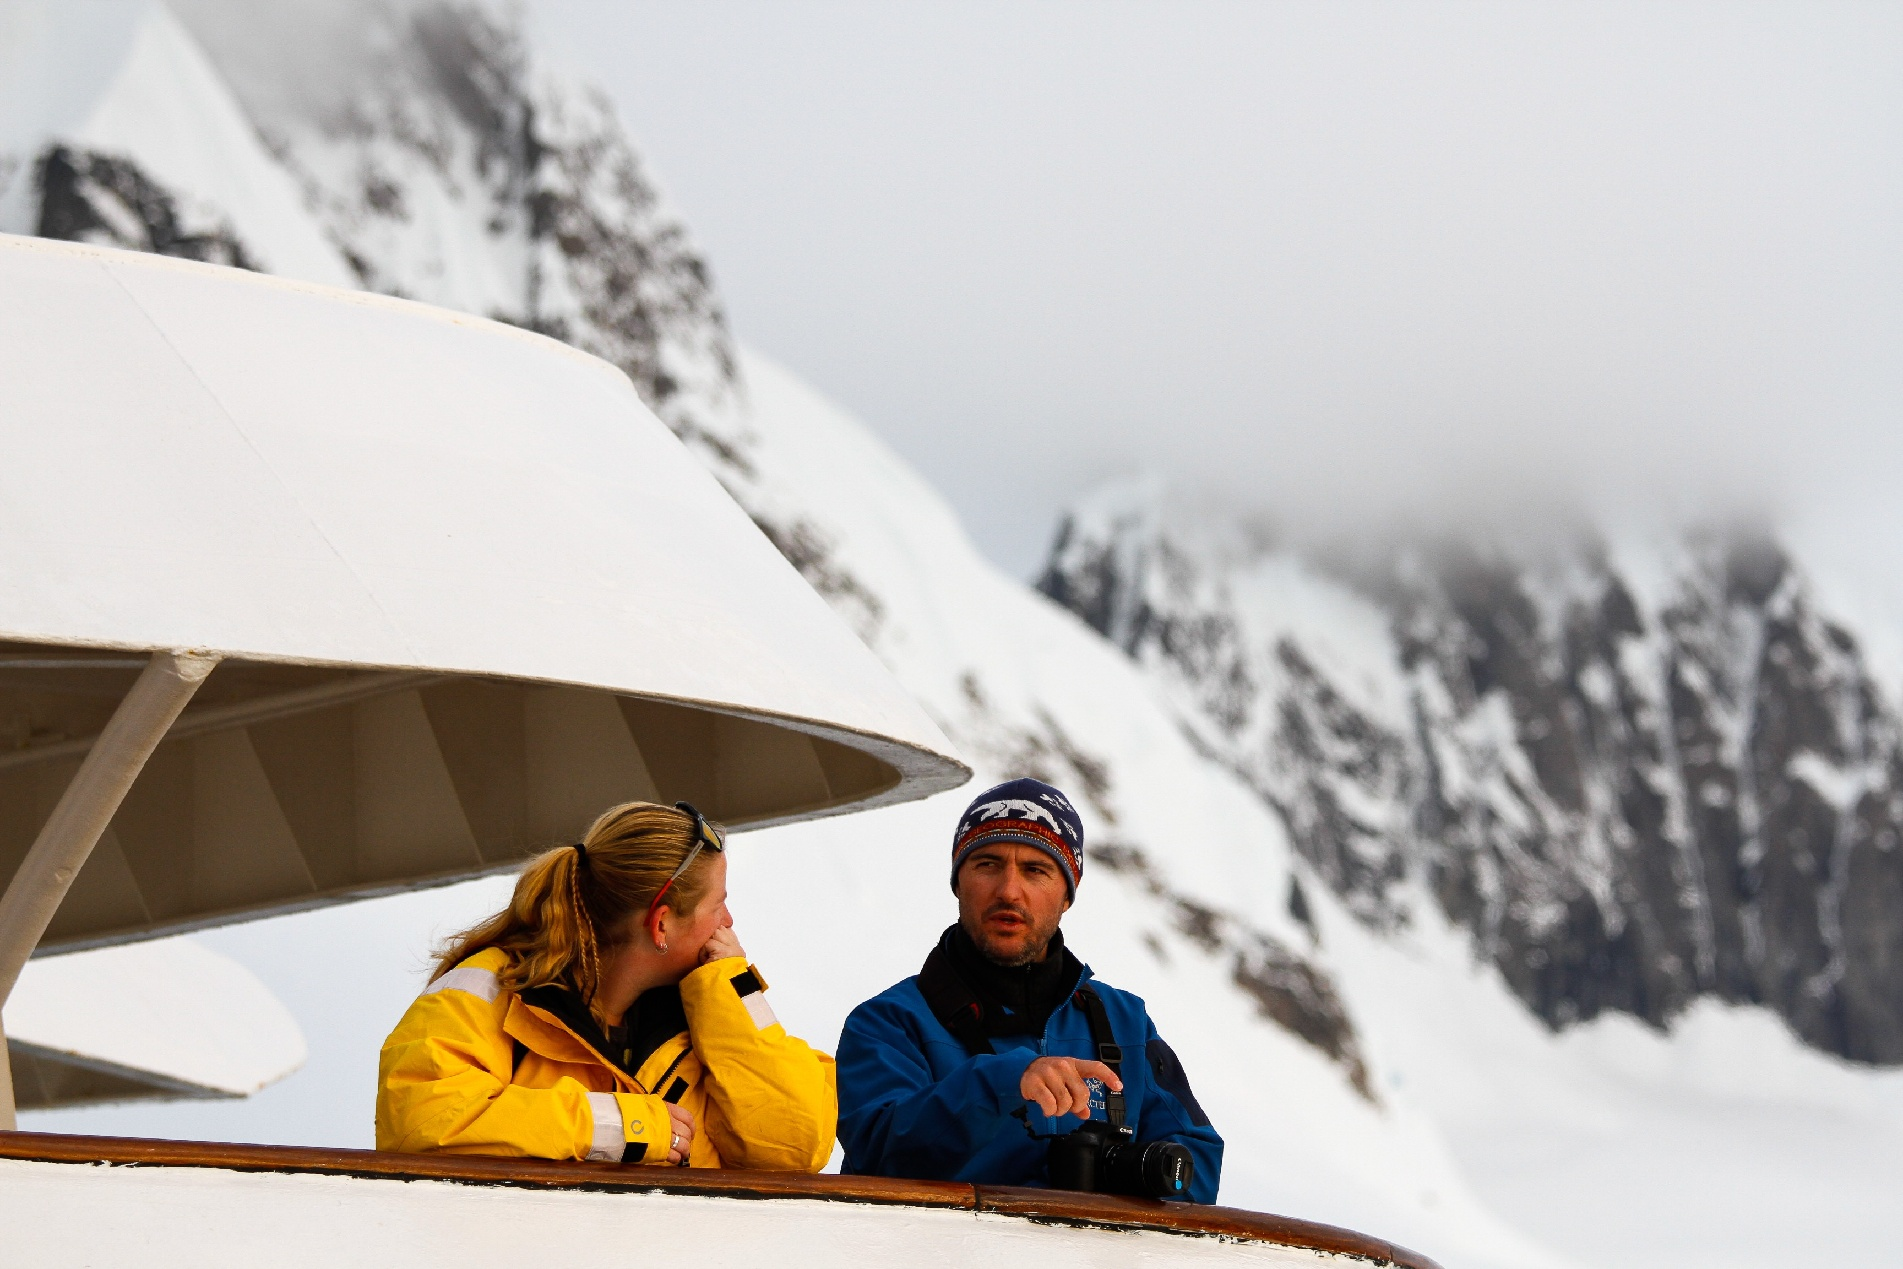 Experienced expedition guides are with you every step of the way to help interpret the sights and sounds of the polar regions.